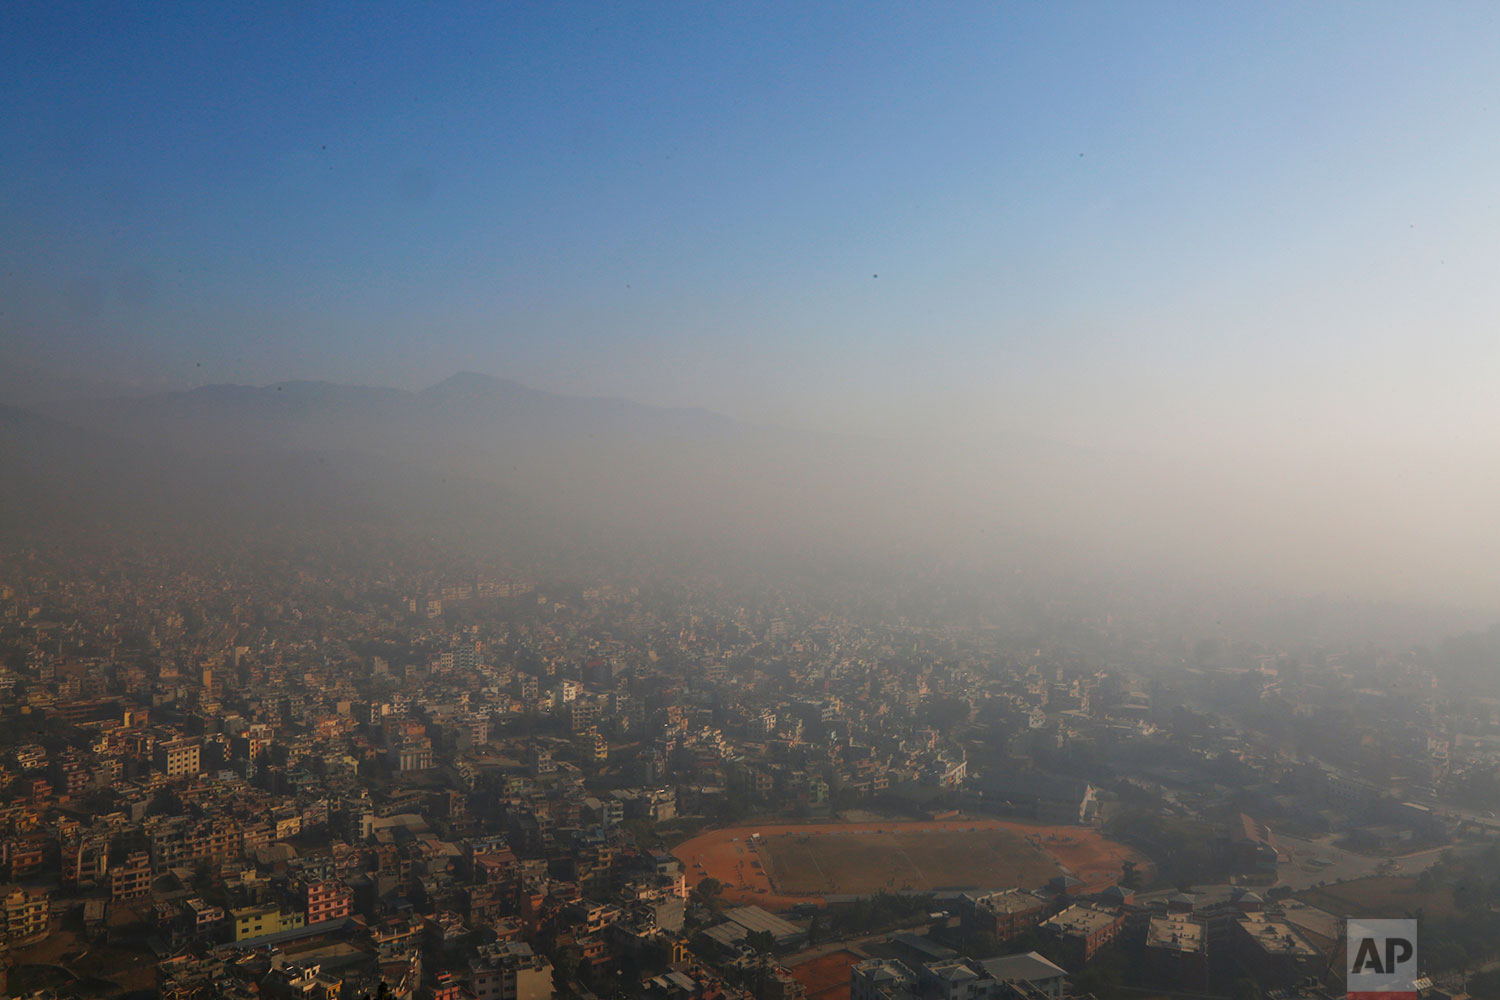 In this Tuesday, Dec. 11, 2018 photo, the smog ridden Kathmandu city is seen atop of hill in Kathmandu, Nepal. (AP Photo/Niranjan Shrestha)